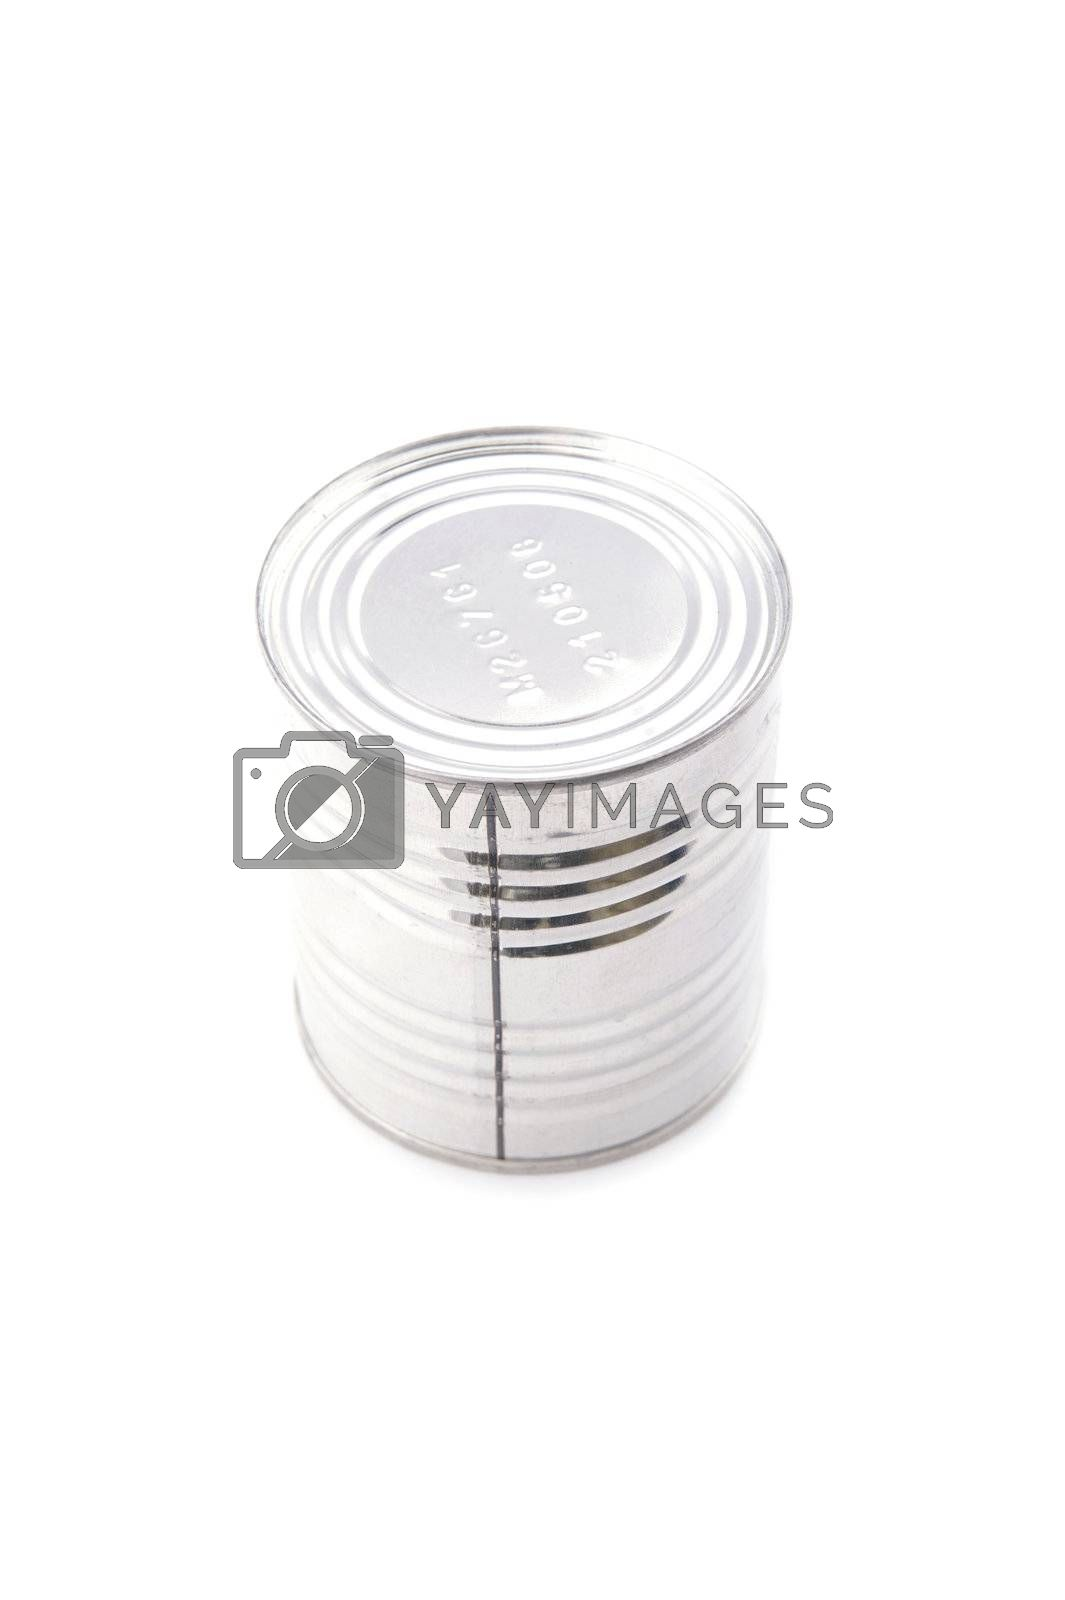 Royalty free image of canned goods macro by Garry518